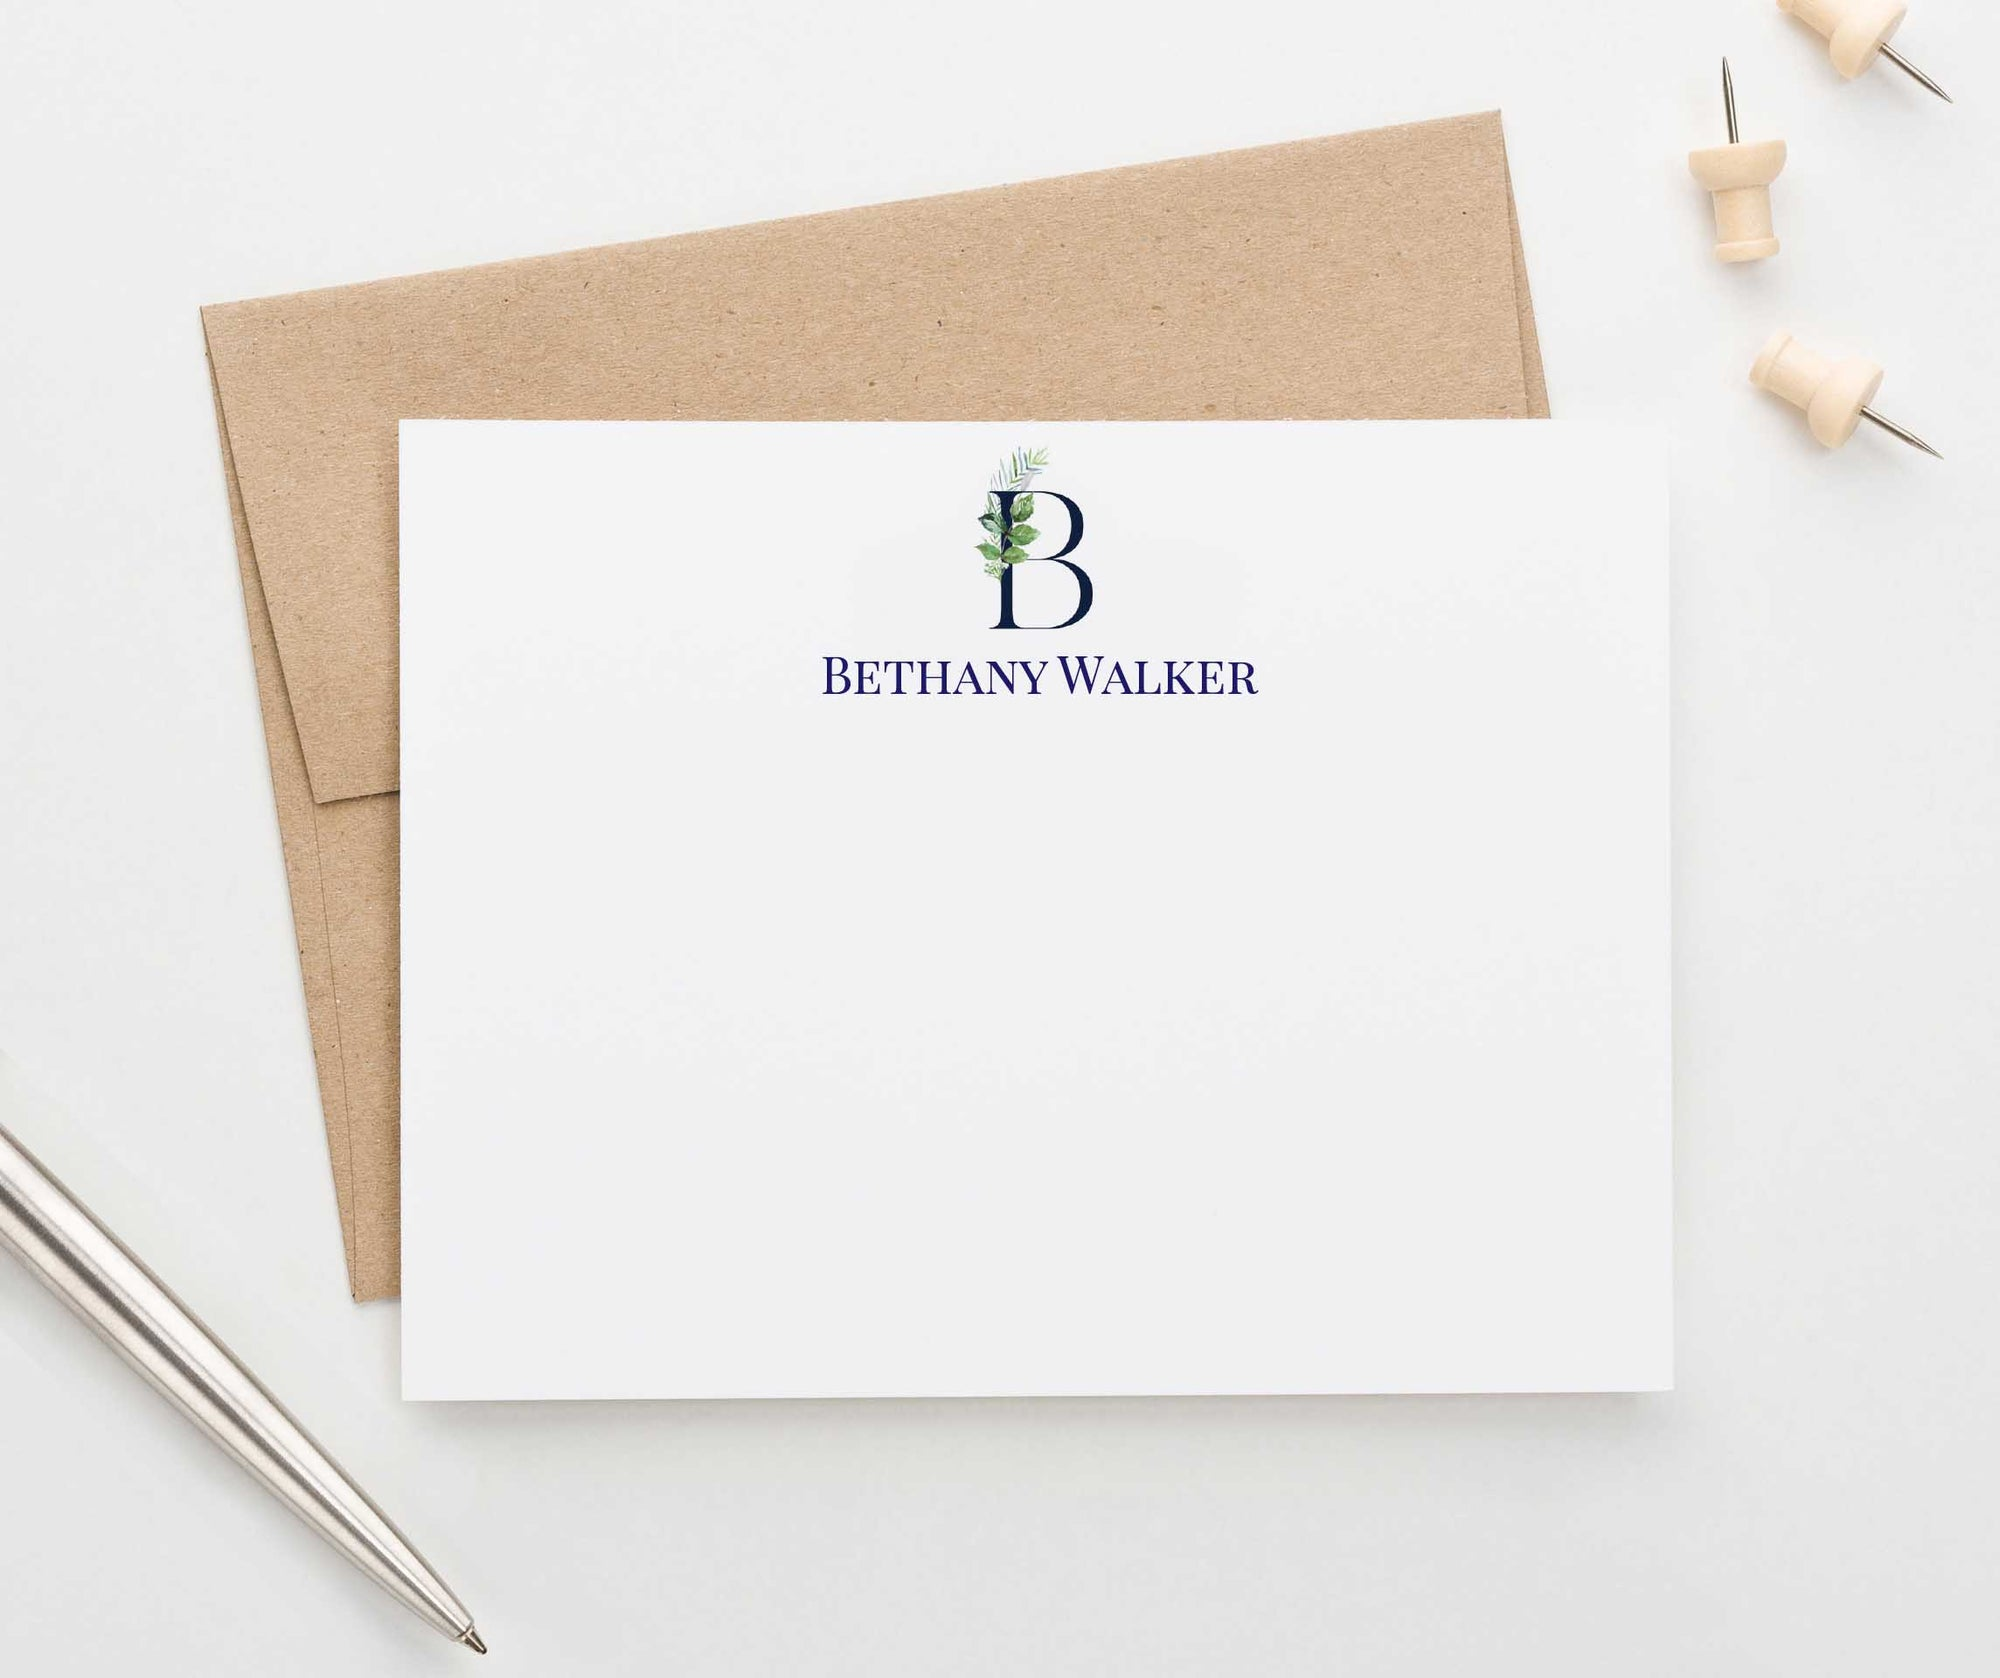 MS041 personalized greenery 1 initial note cards for women men elegant monogram